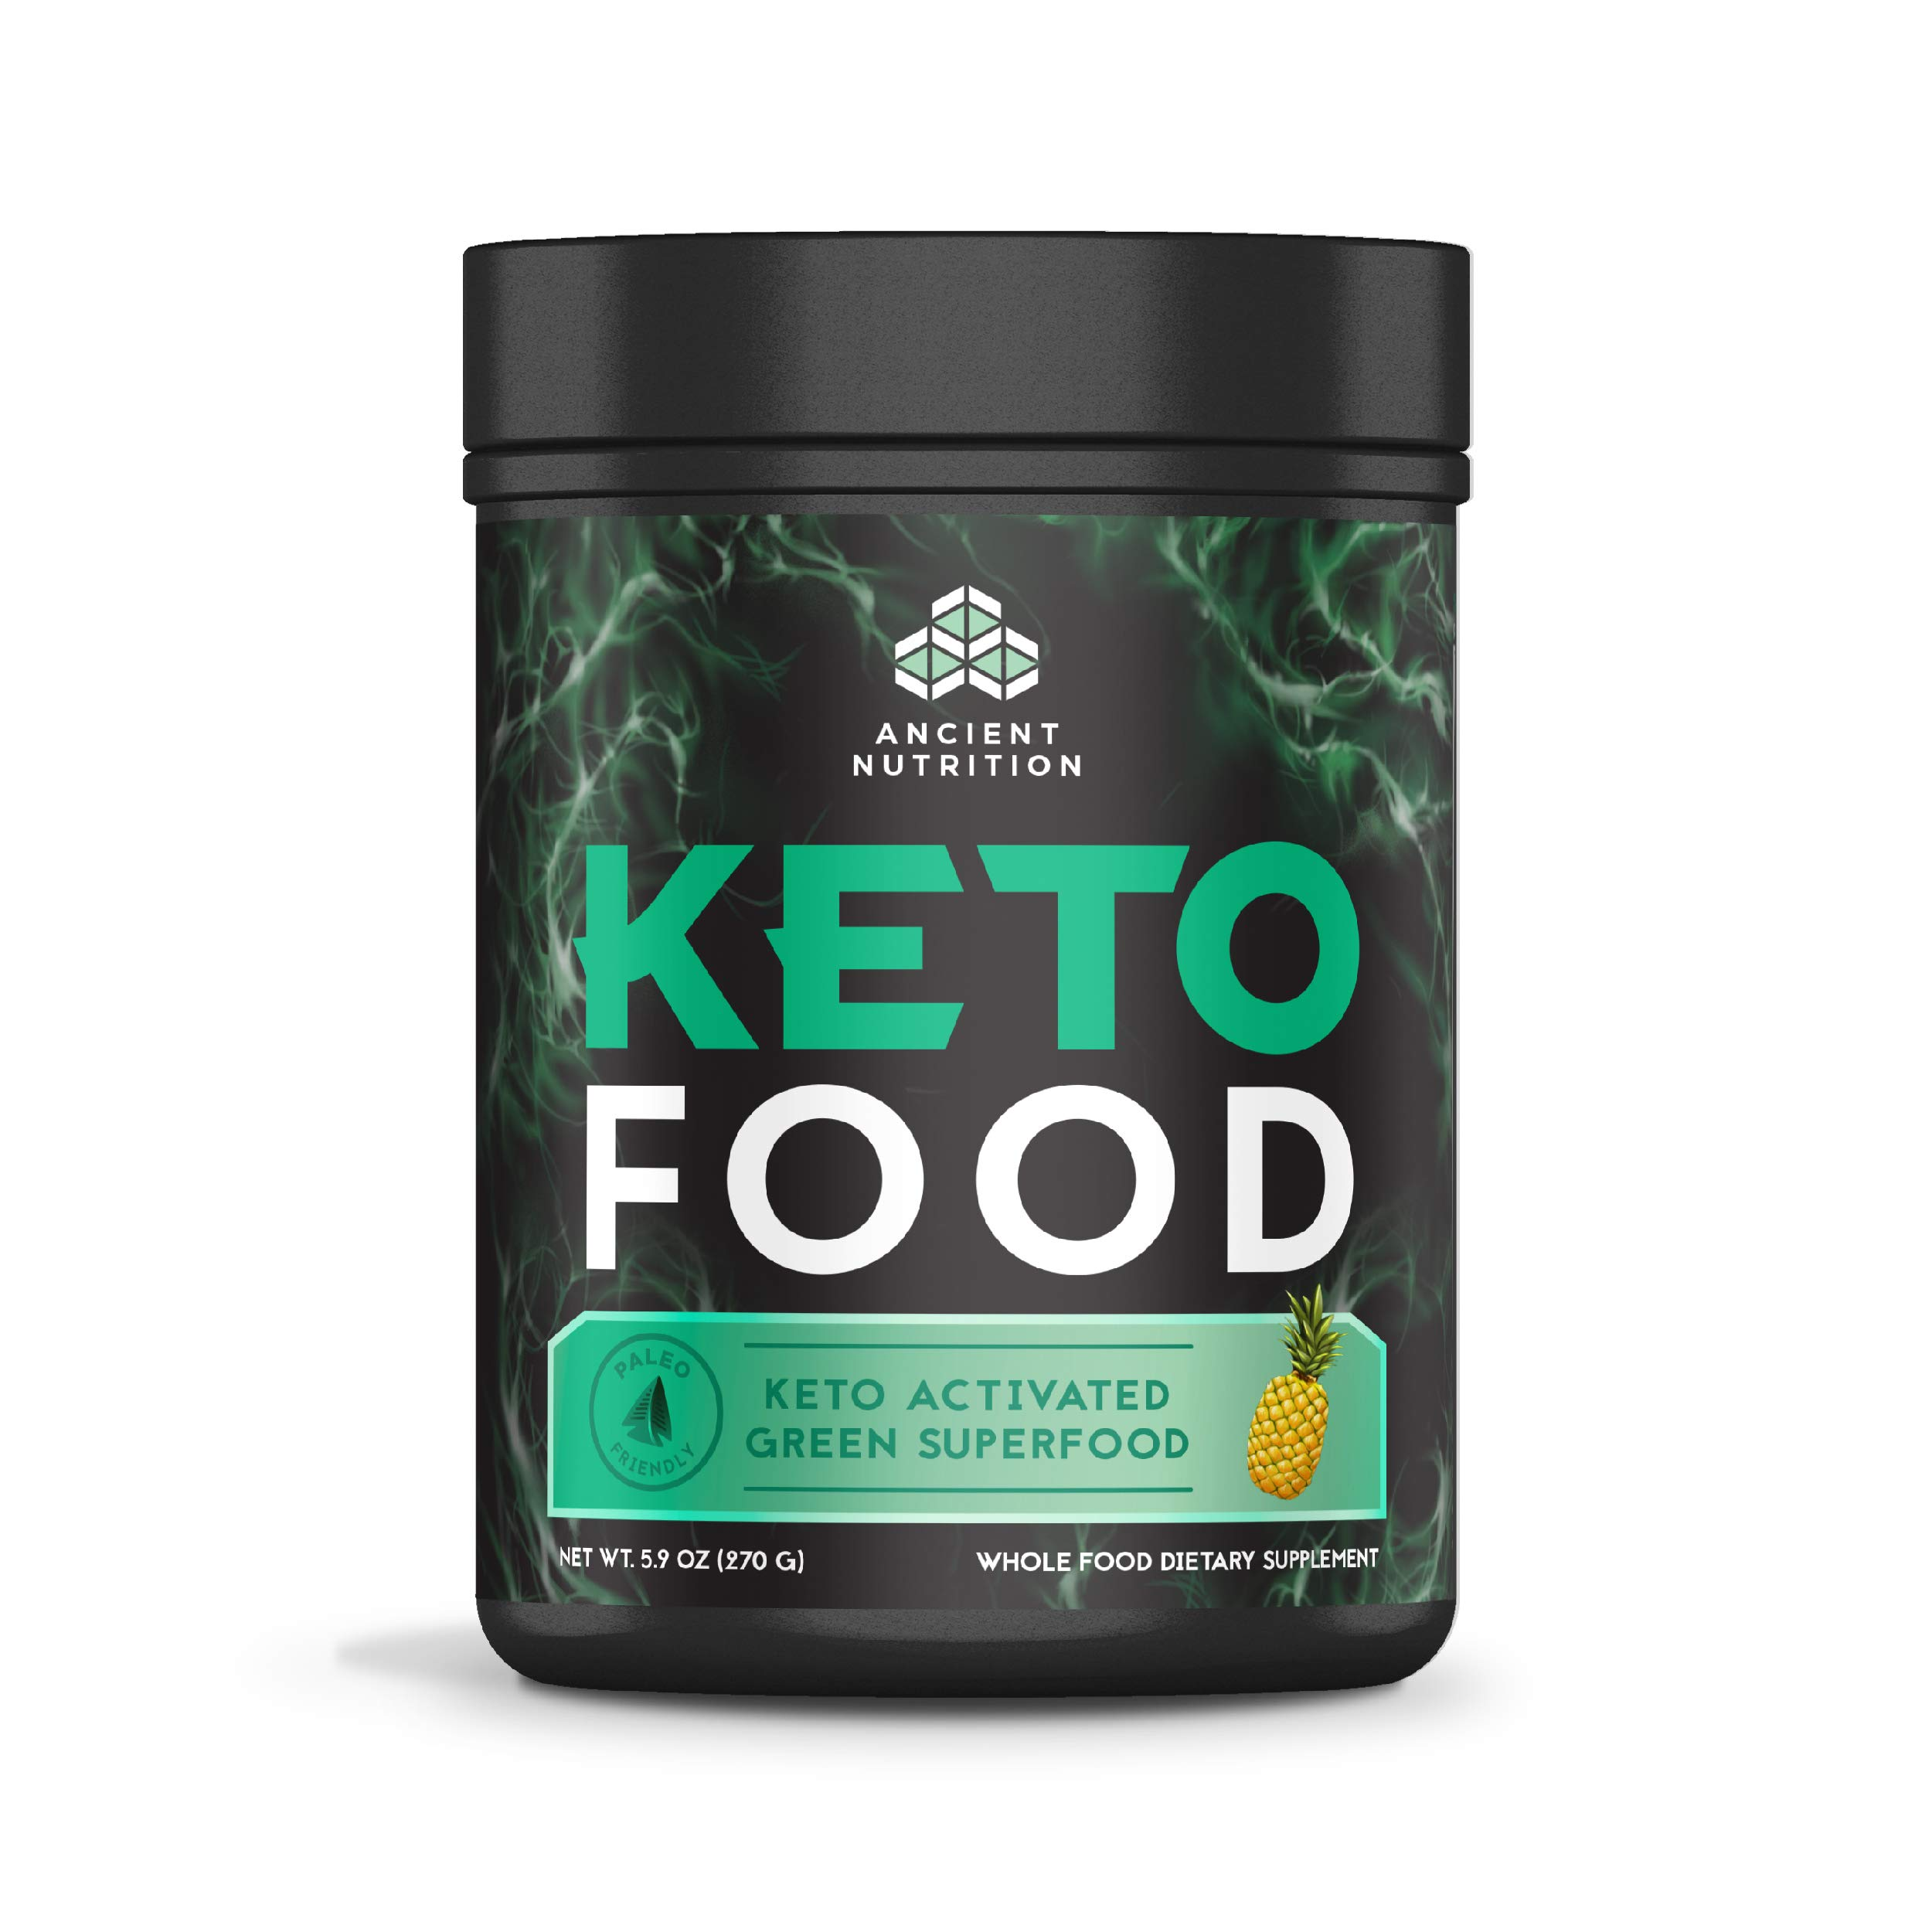 Ancient Nutrition KetoFOOD, Pineapple Flavor, 300 Grams, Keto Activated Green Superfood by Ancient Nutrition